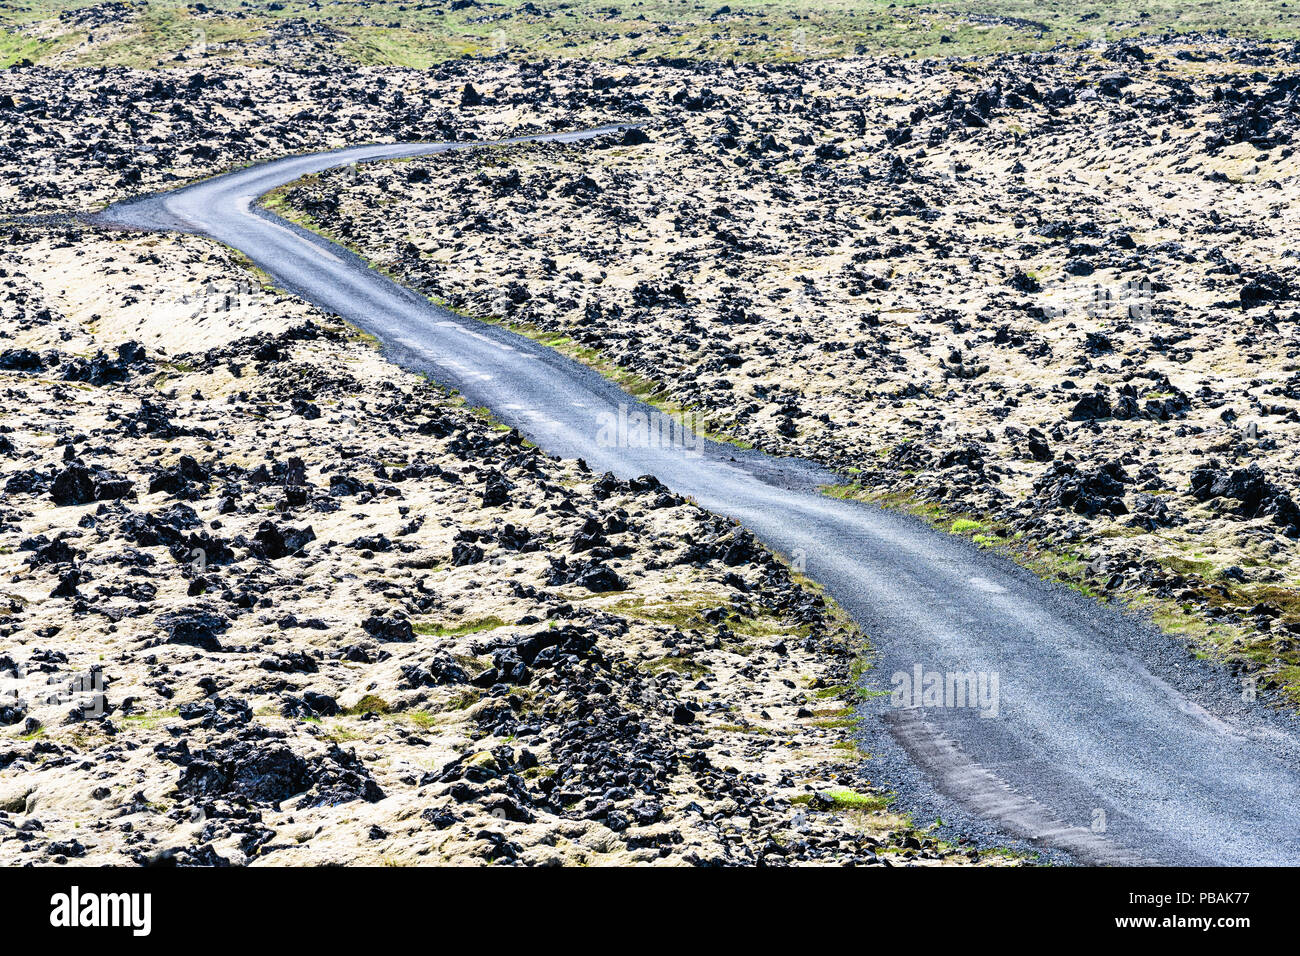 Winding, disappearing road in black lava field formations to Djupalonssandur beach at Snaefellsnes peninsula, Iceland - Stock Image